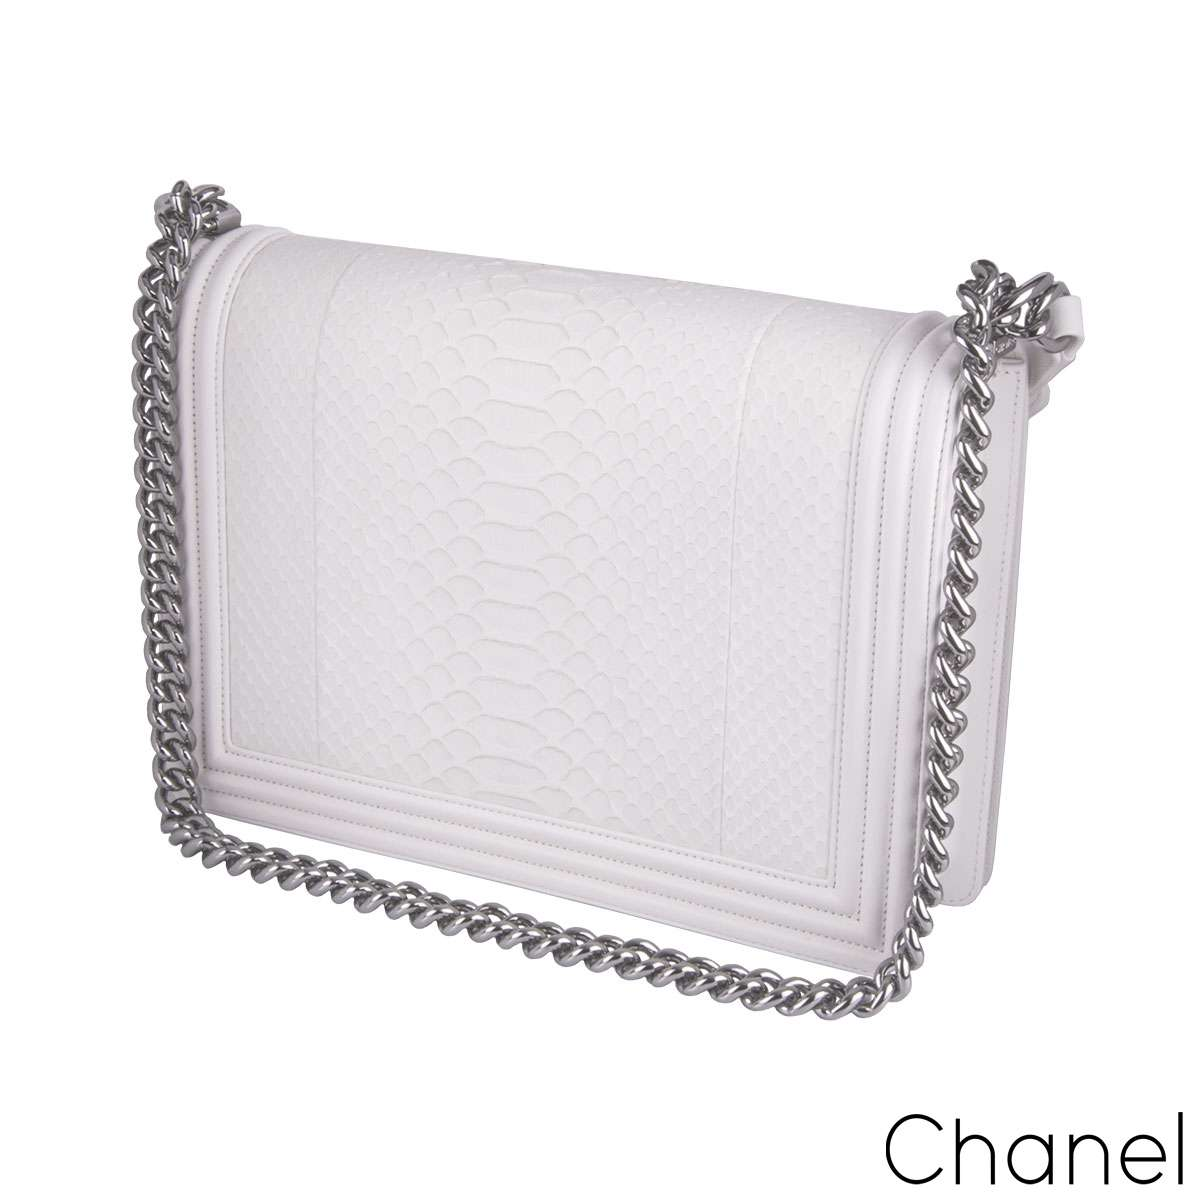 Chanel White Python Large Boy Bag